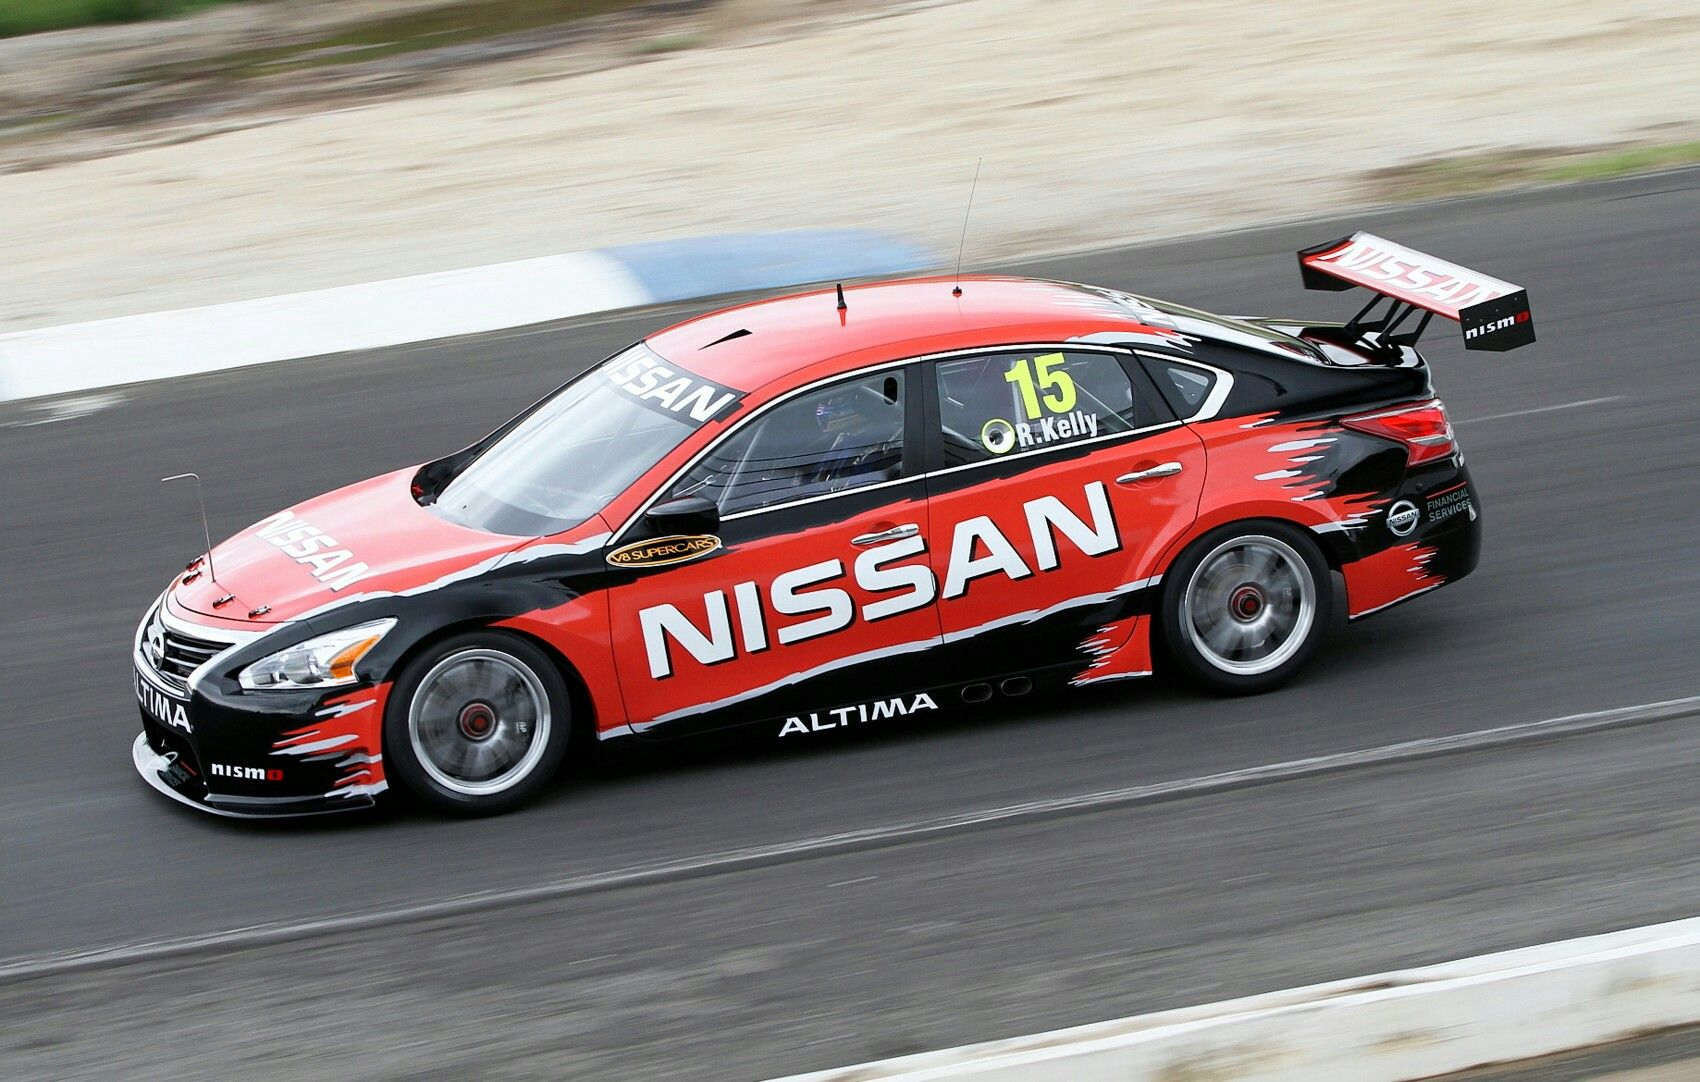 v8 supercar on melbourne track todd kelly takes nissan altima on track for its first shakedown